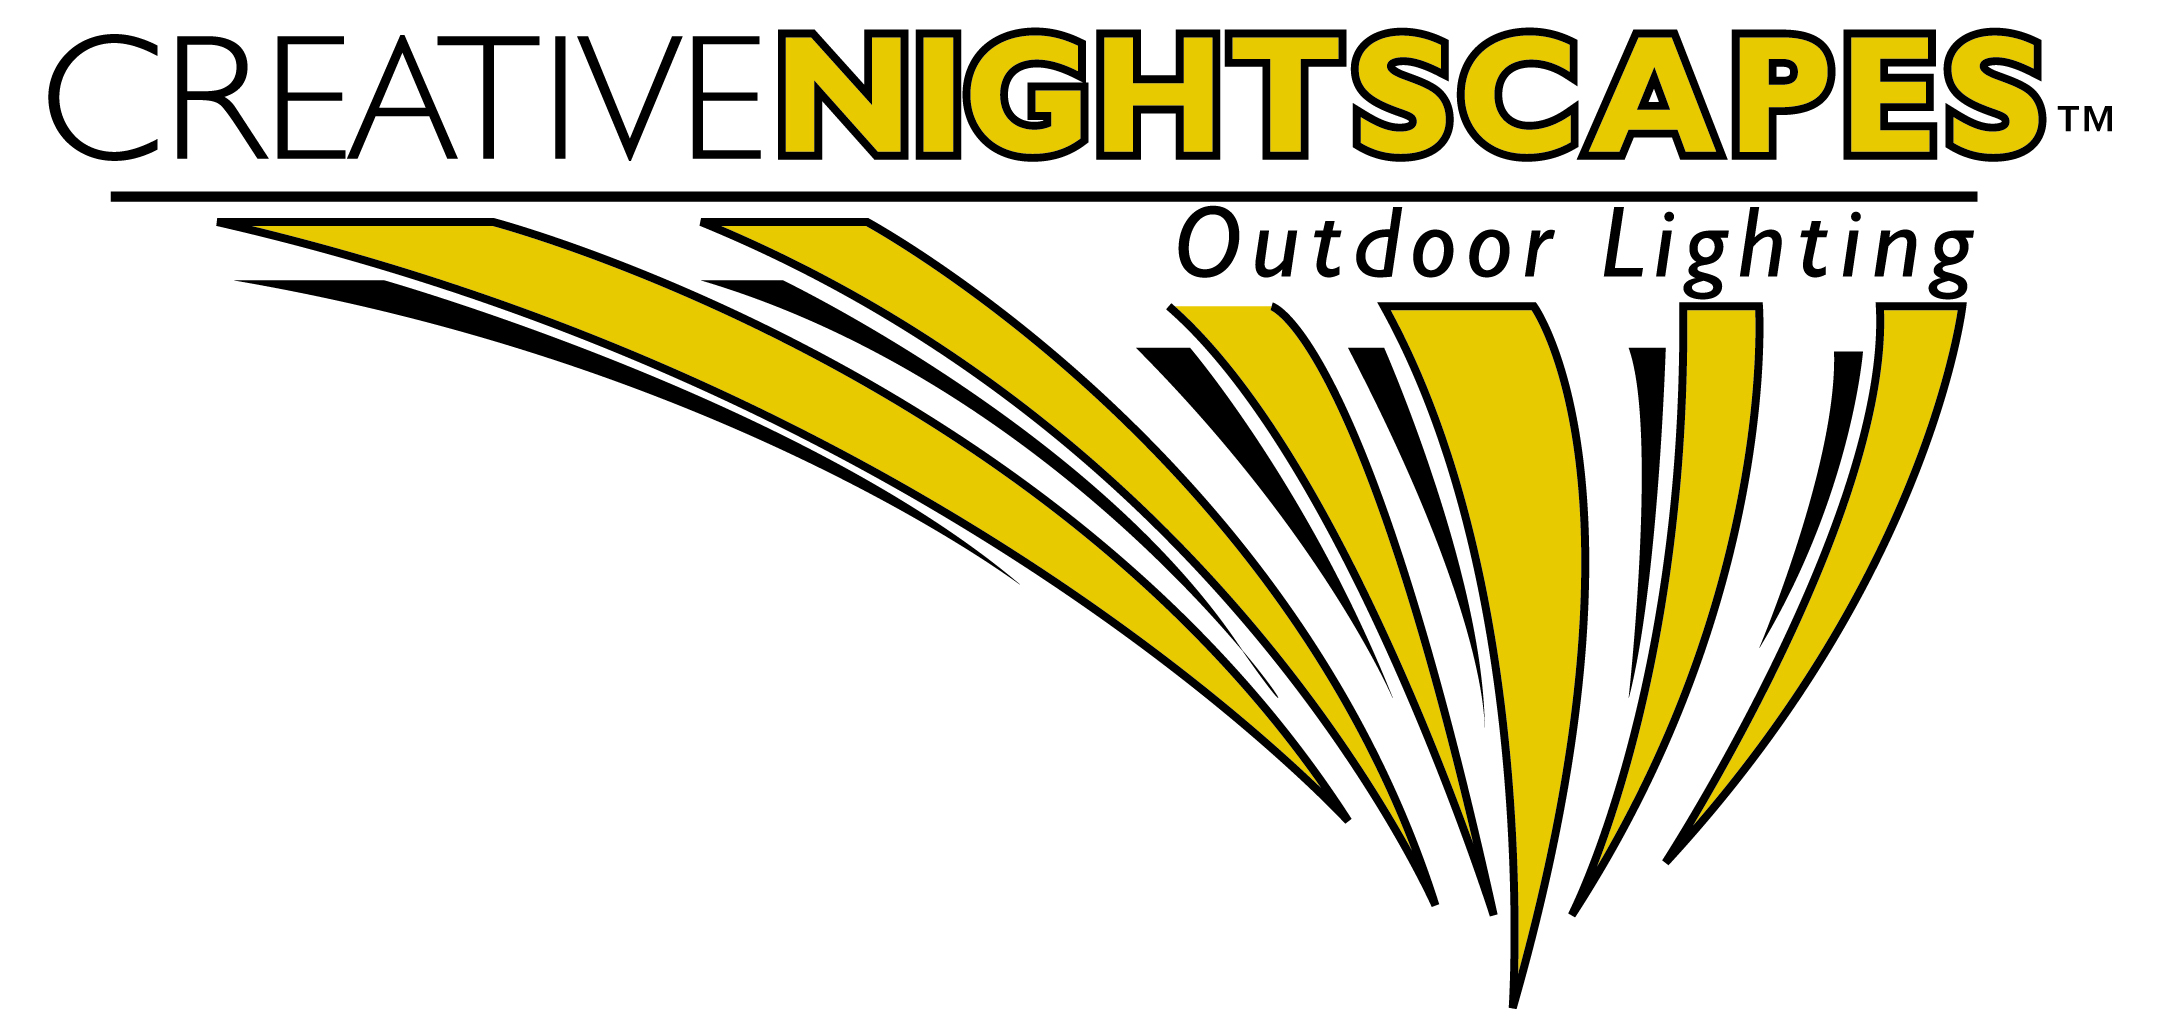 Creative Nightscapes Outdoor Lighting logo